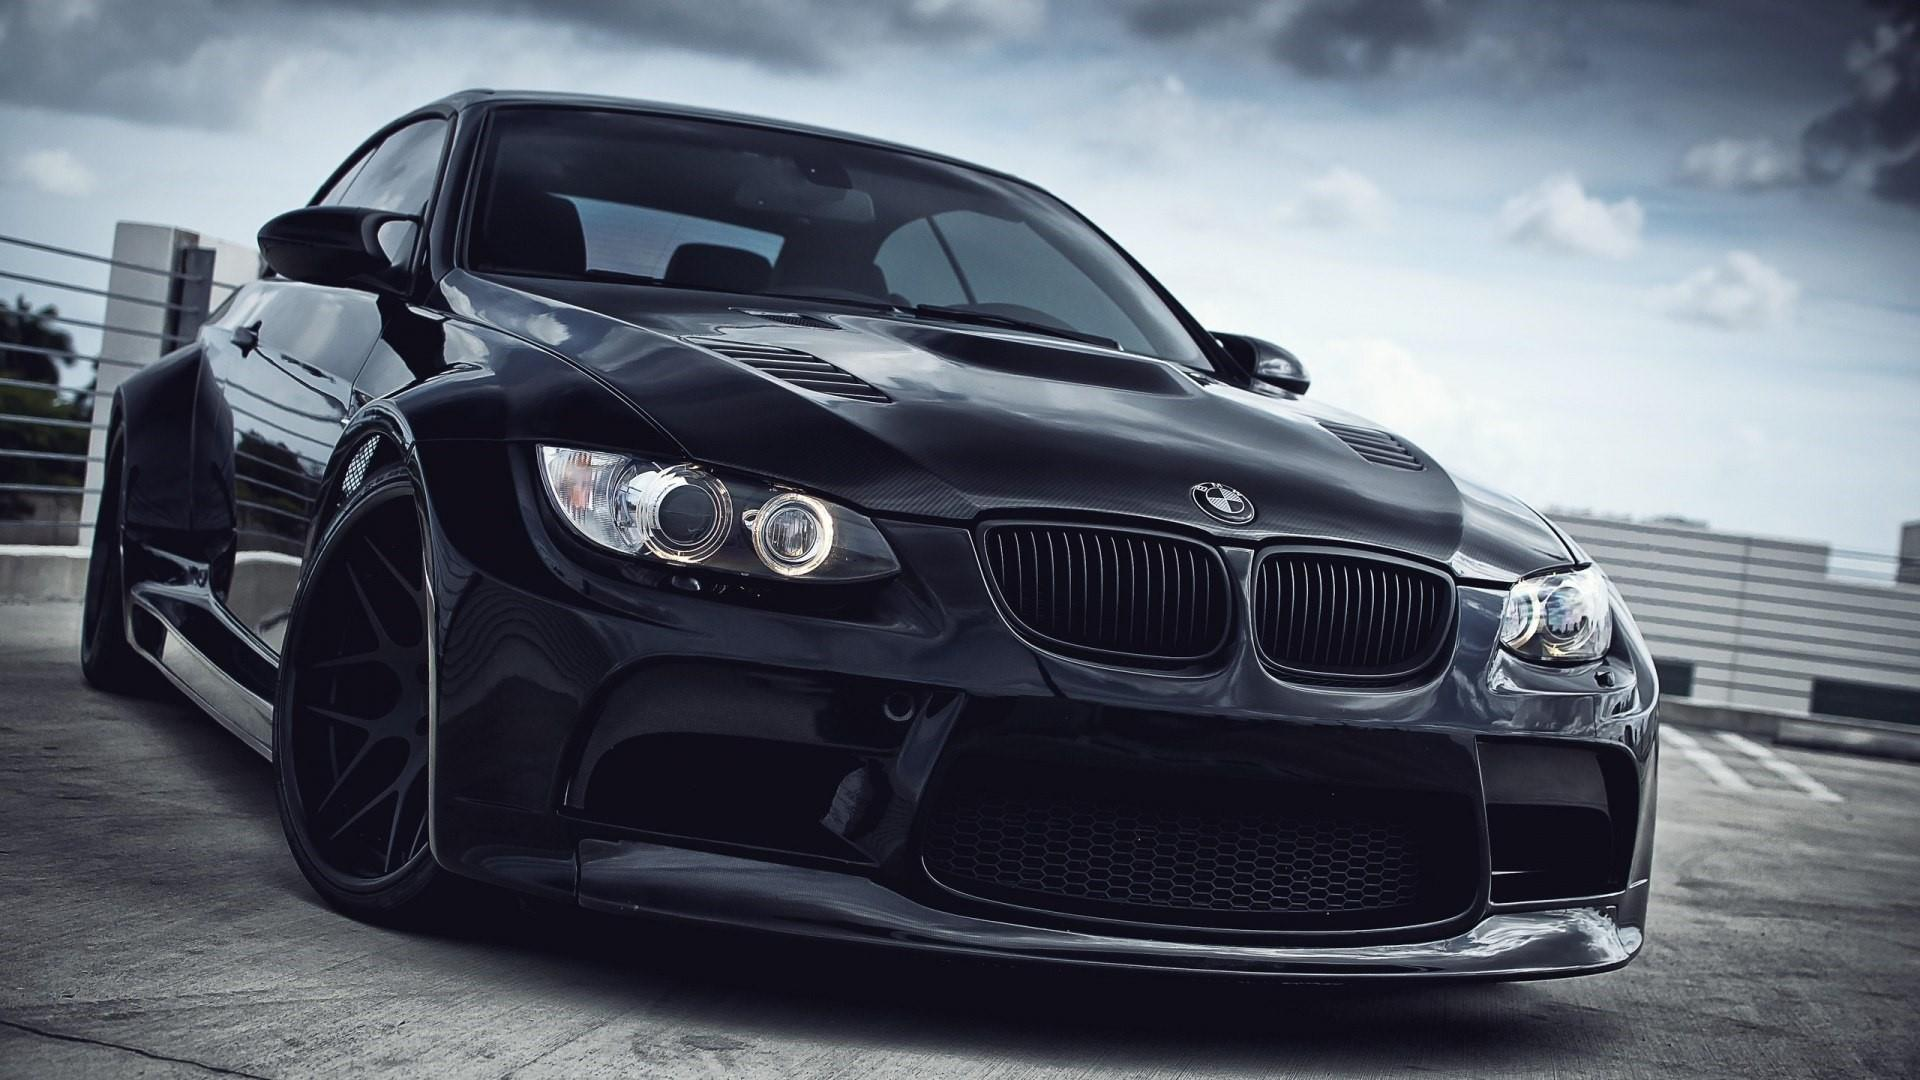 Bmw M3 Wallpapers Top Free Bmw M3 Backgrounds